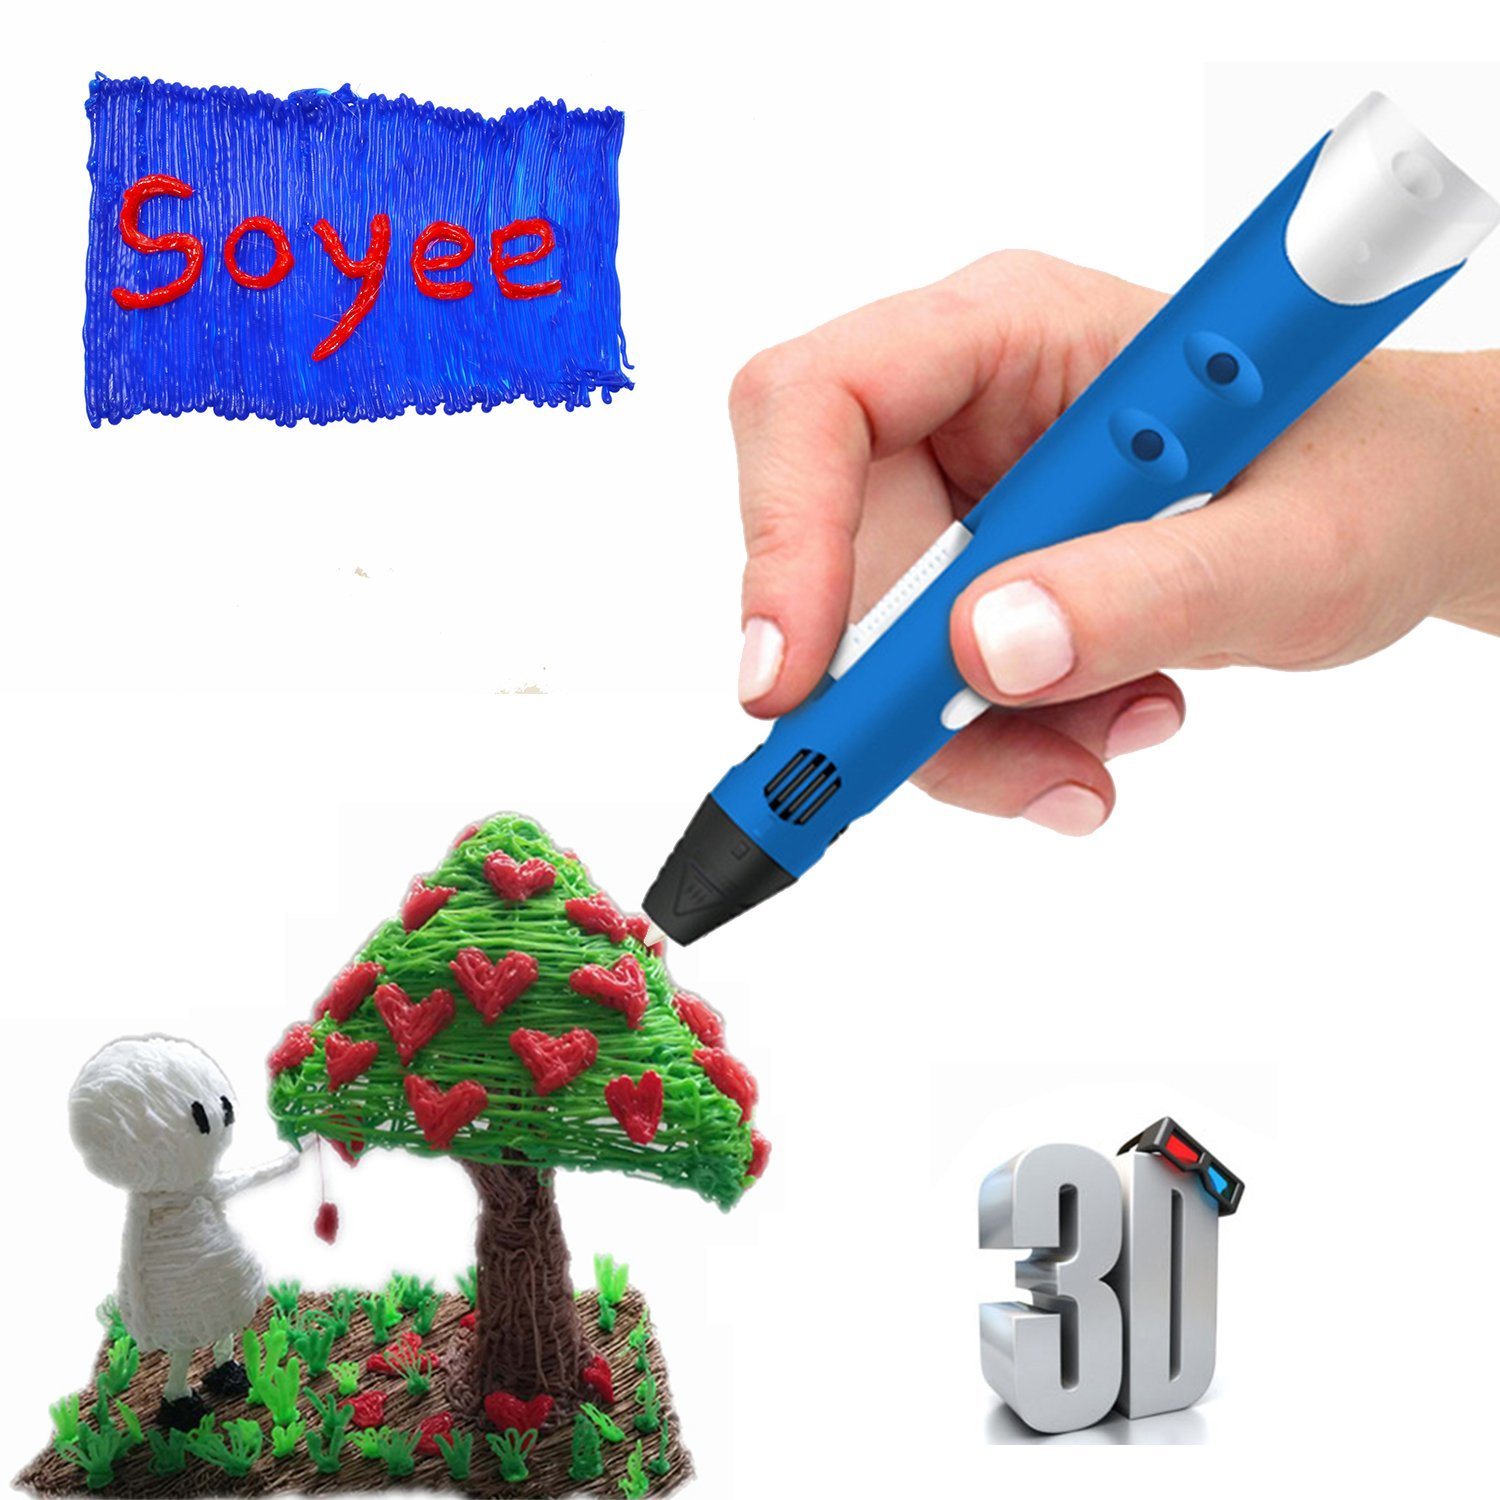 Gifts for Impossible People | 3D Pen Doodler at Amazon